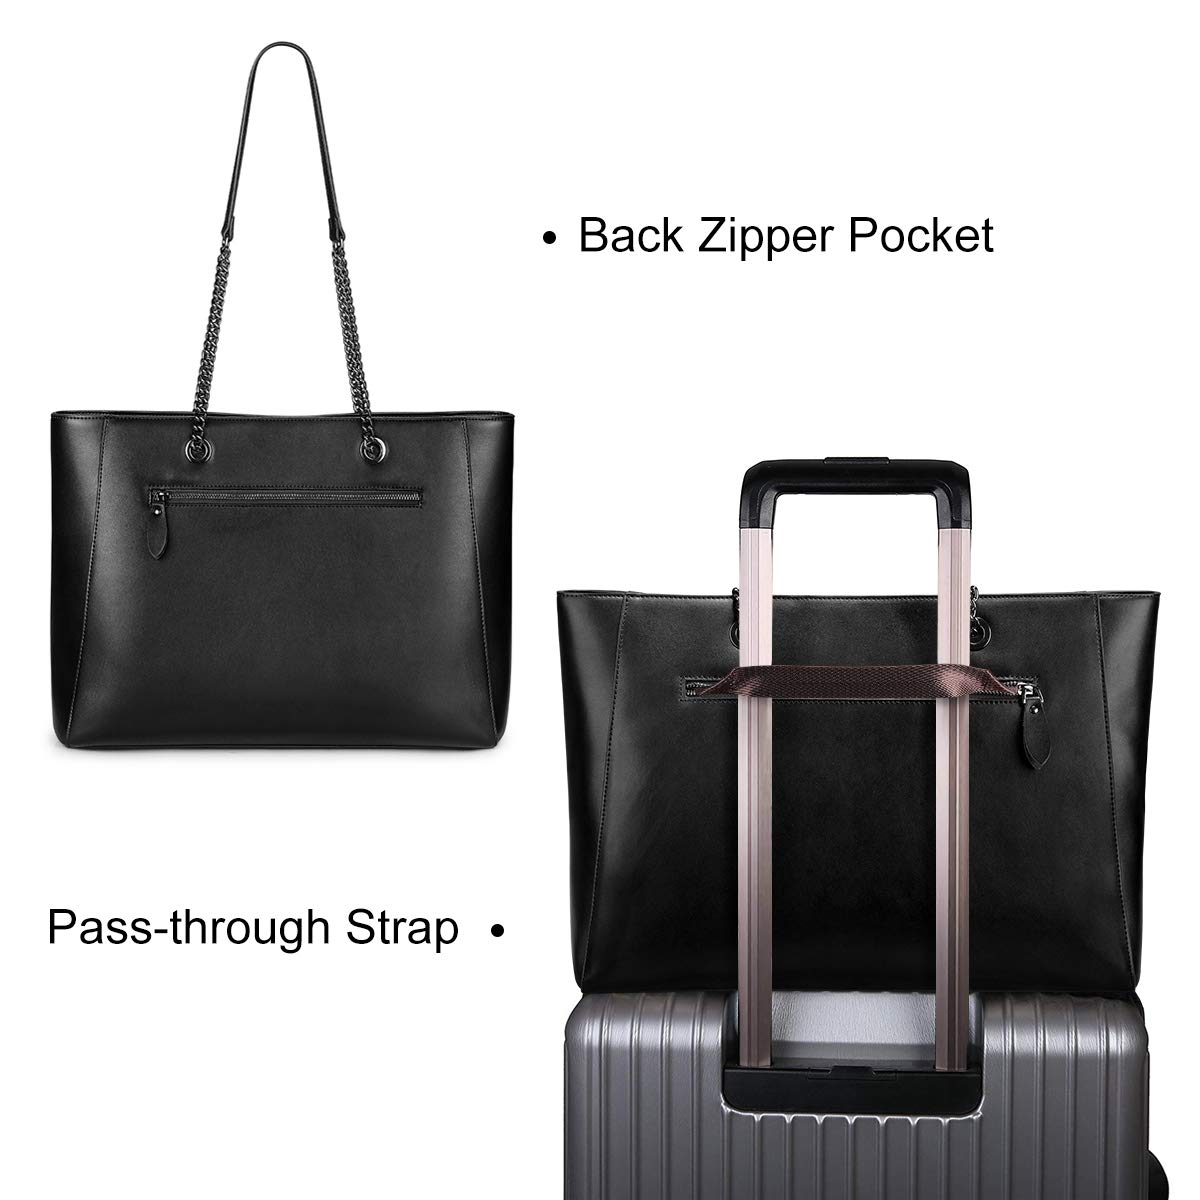 S-ZONE Women Leather Tote Bag Genuine Leather Shoulder Bag Fit Up to 15.6 in Laptop by S-ZONE (Image #3)